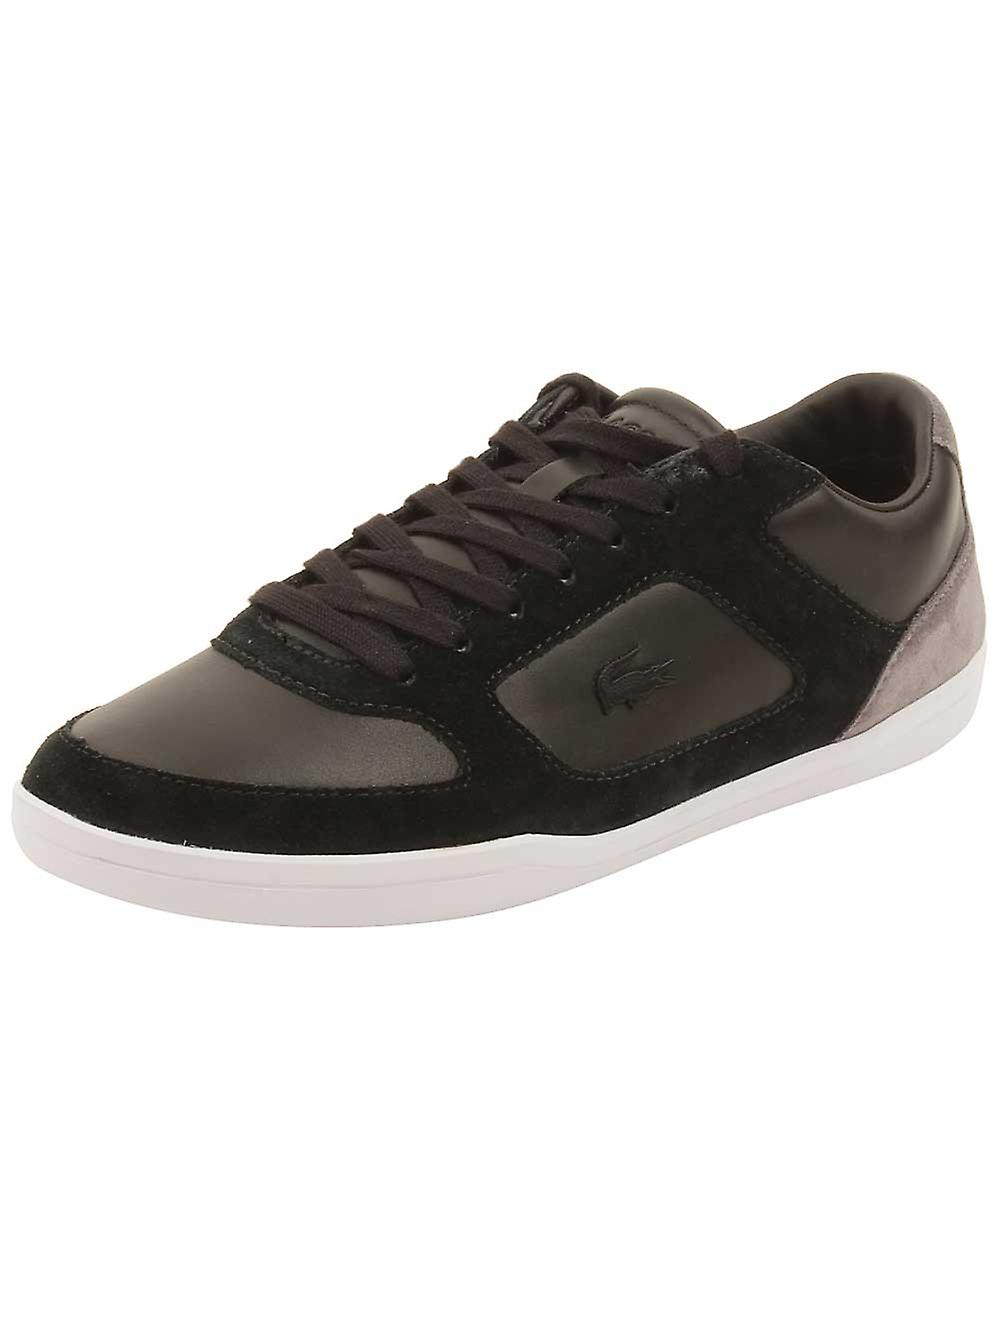 Lacoste Mens Court-Minimal 316 Sneakers in Black